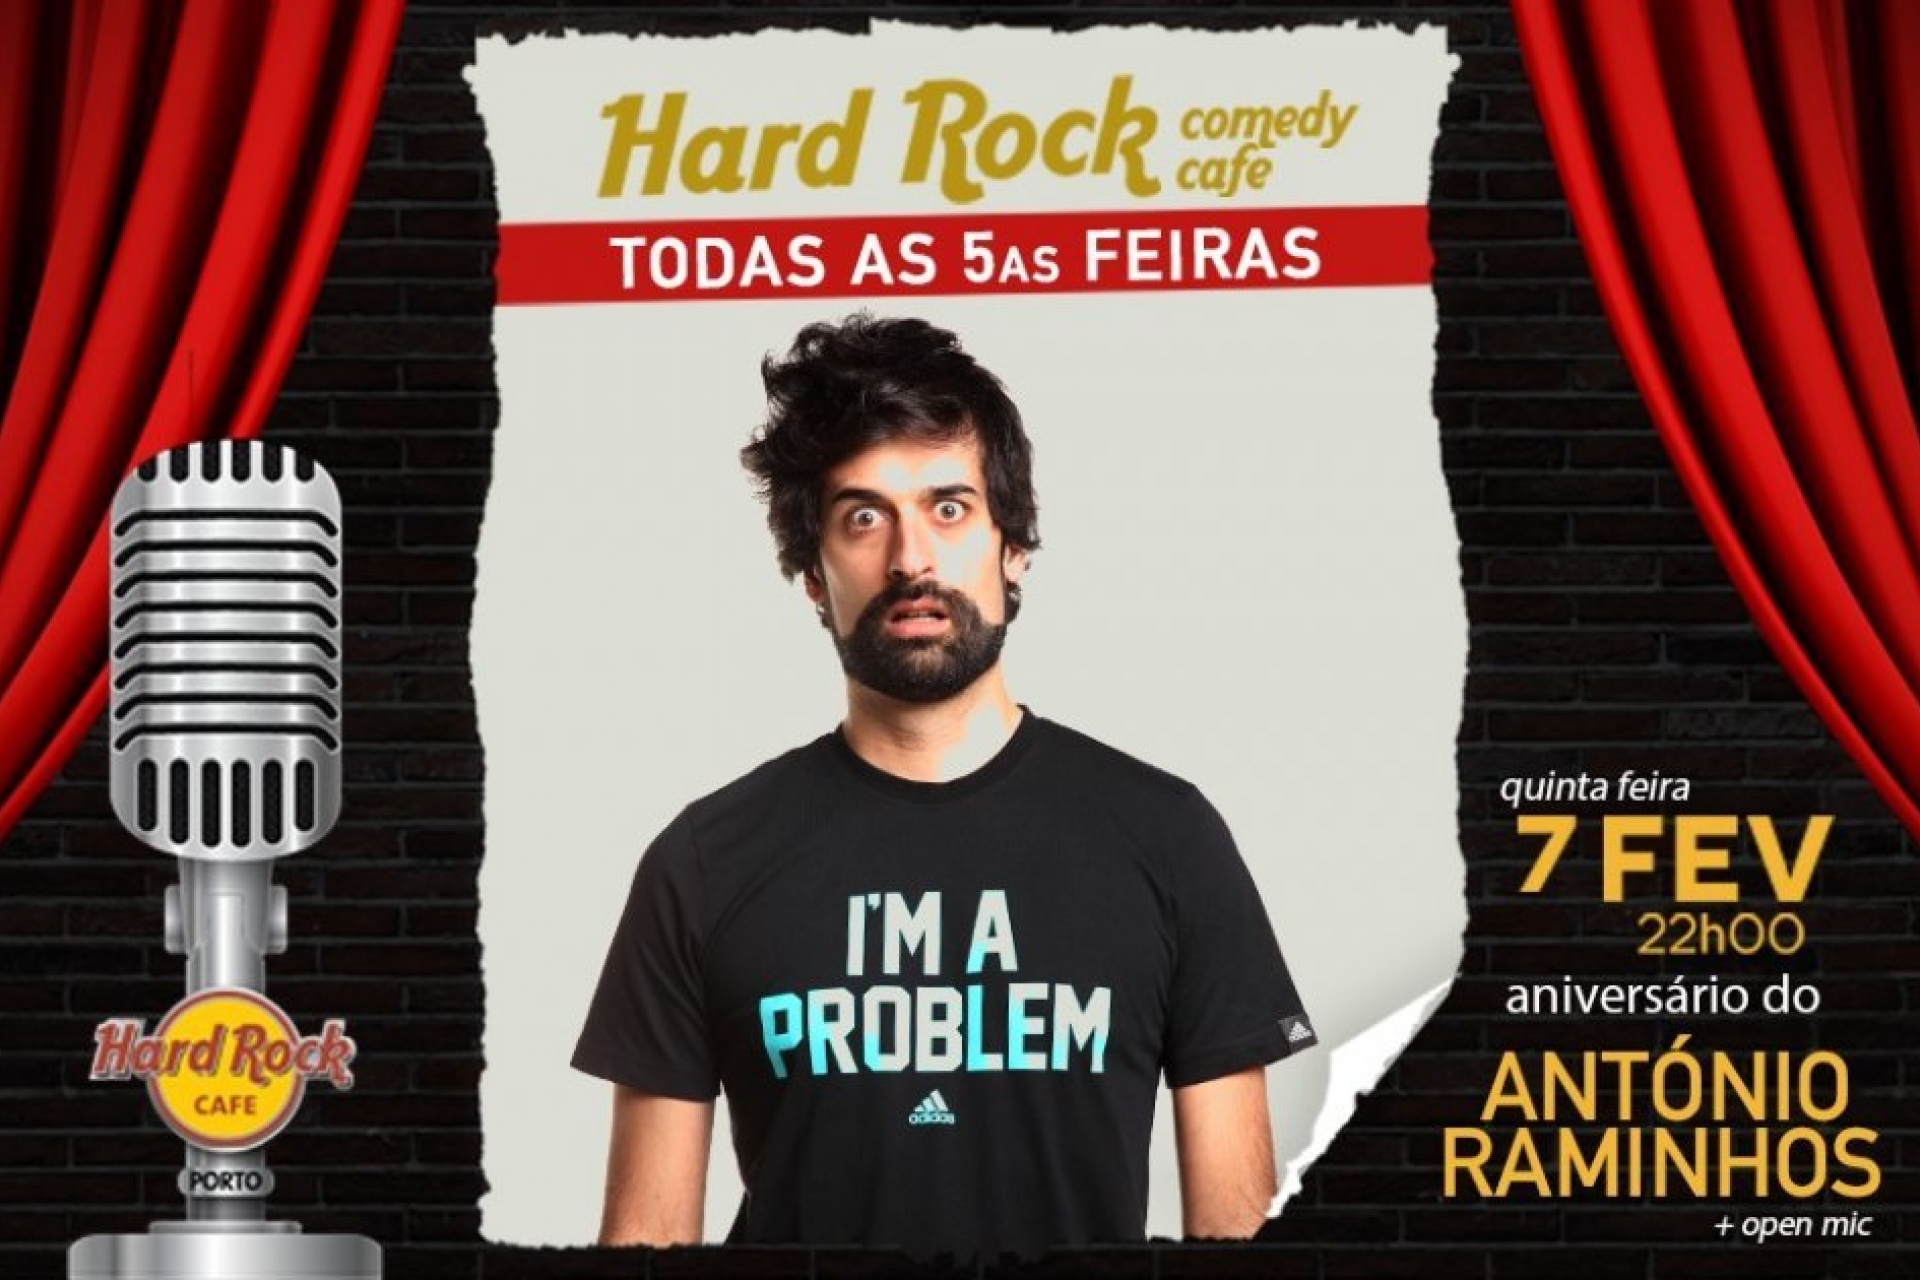 PortoCool_Blog_Vai haver Stand Up Comedy no Hard Rock Café